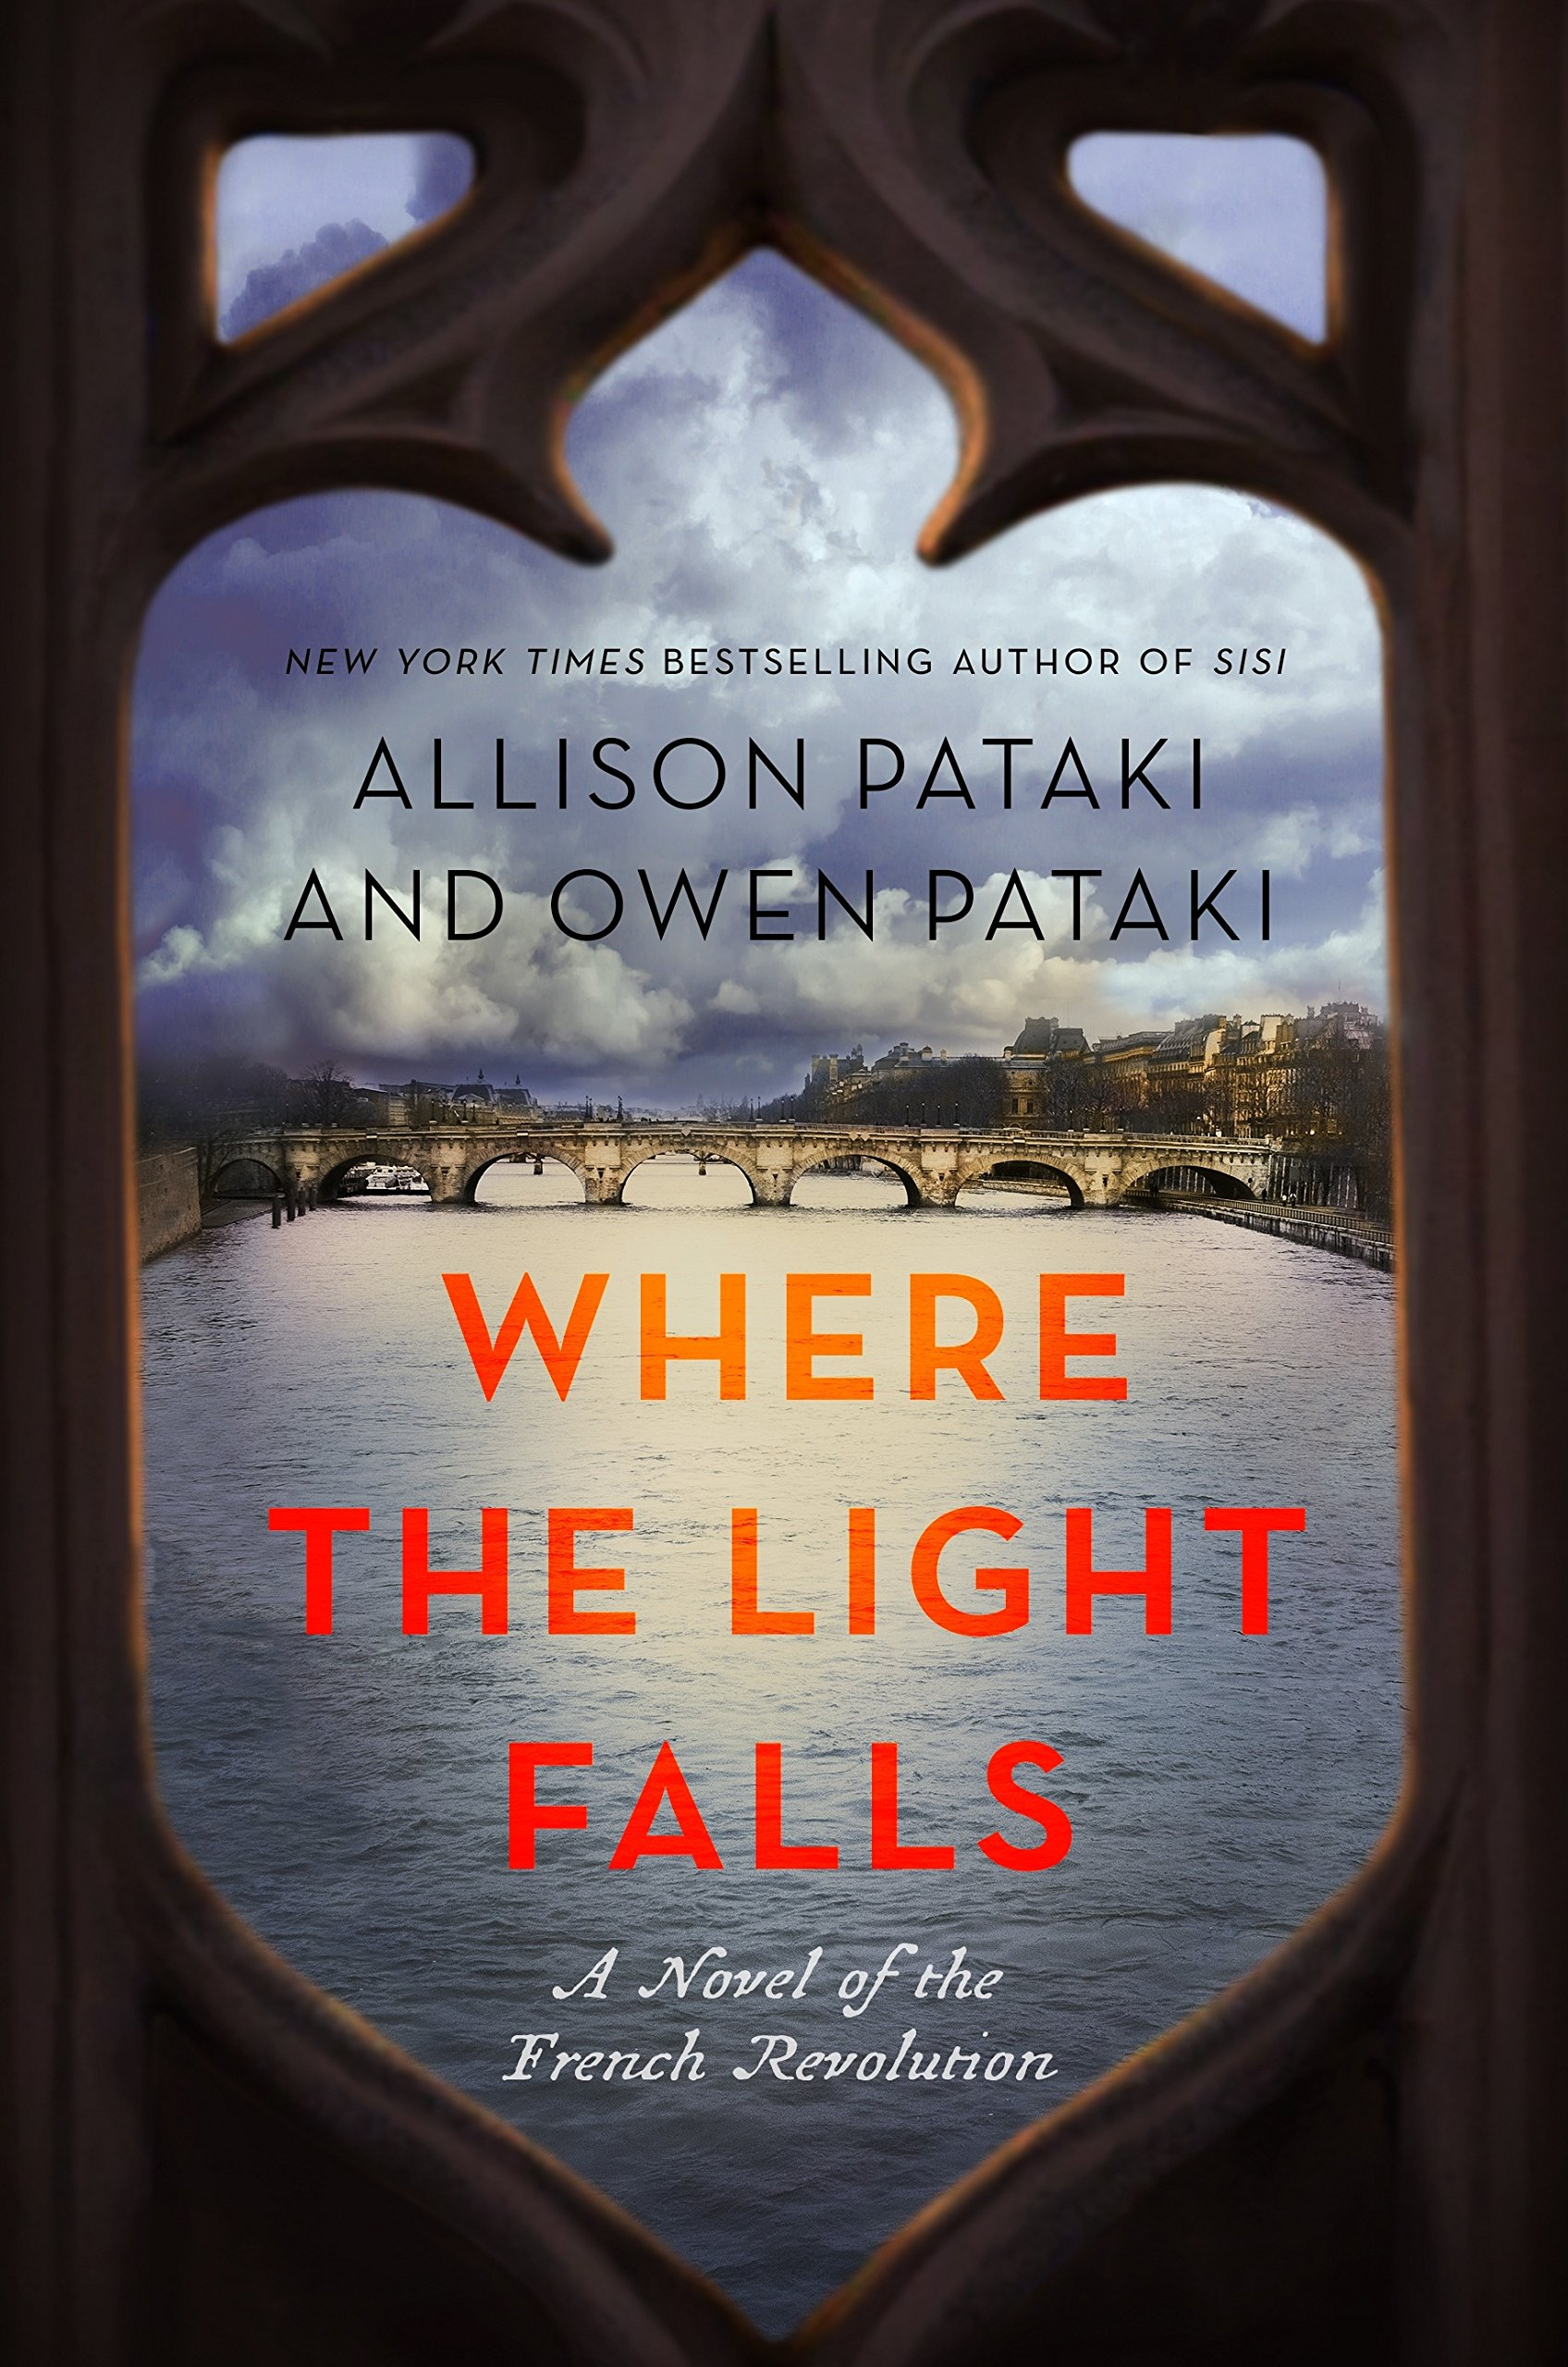 Amazon where the light falls a novel of the french revolution amazon where the light falls a novel of the french revolution 9780399591686 allison pataki owen pataki books fandeluxe Gallery